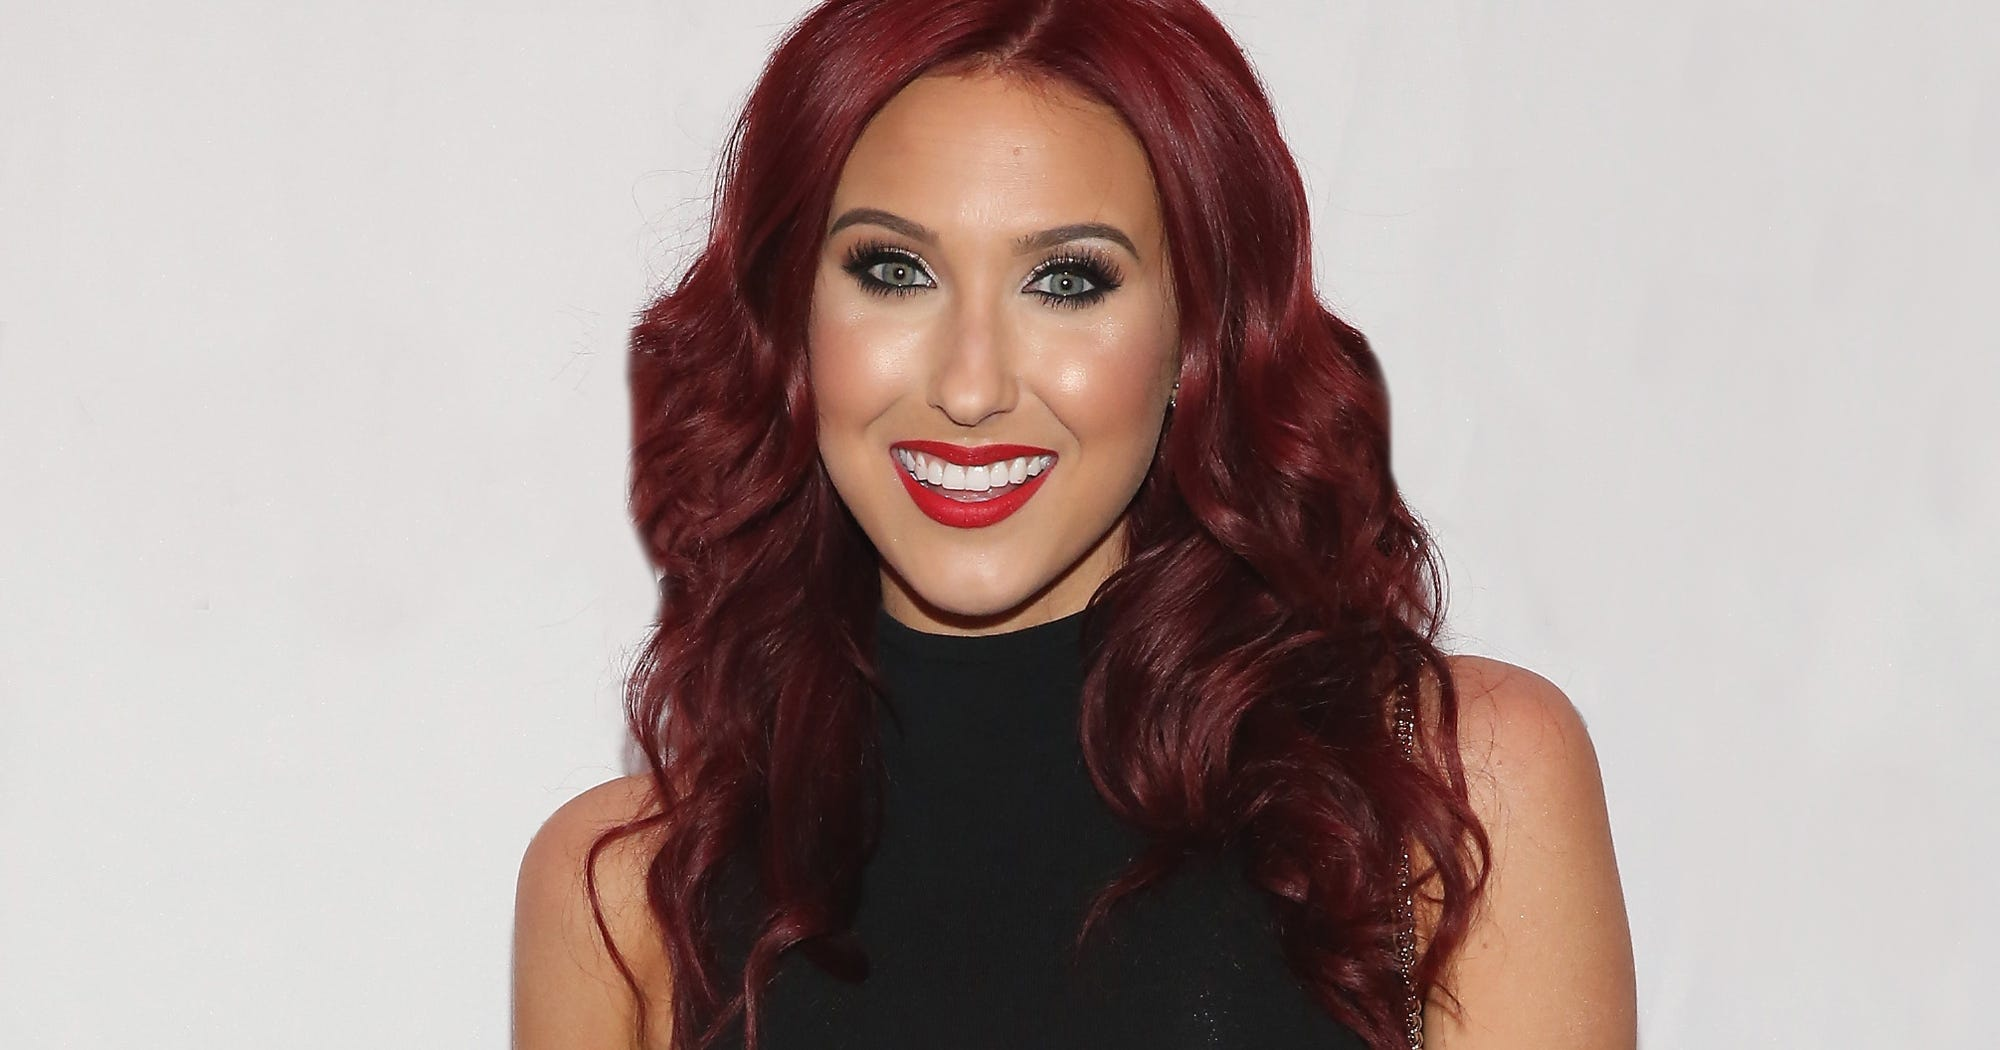 ce2b8f38e78c Jaclyn Hill New Beauty Partnership - Twitter